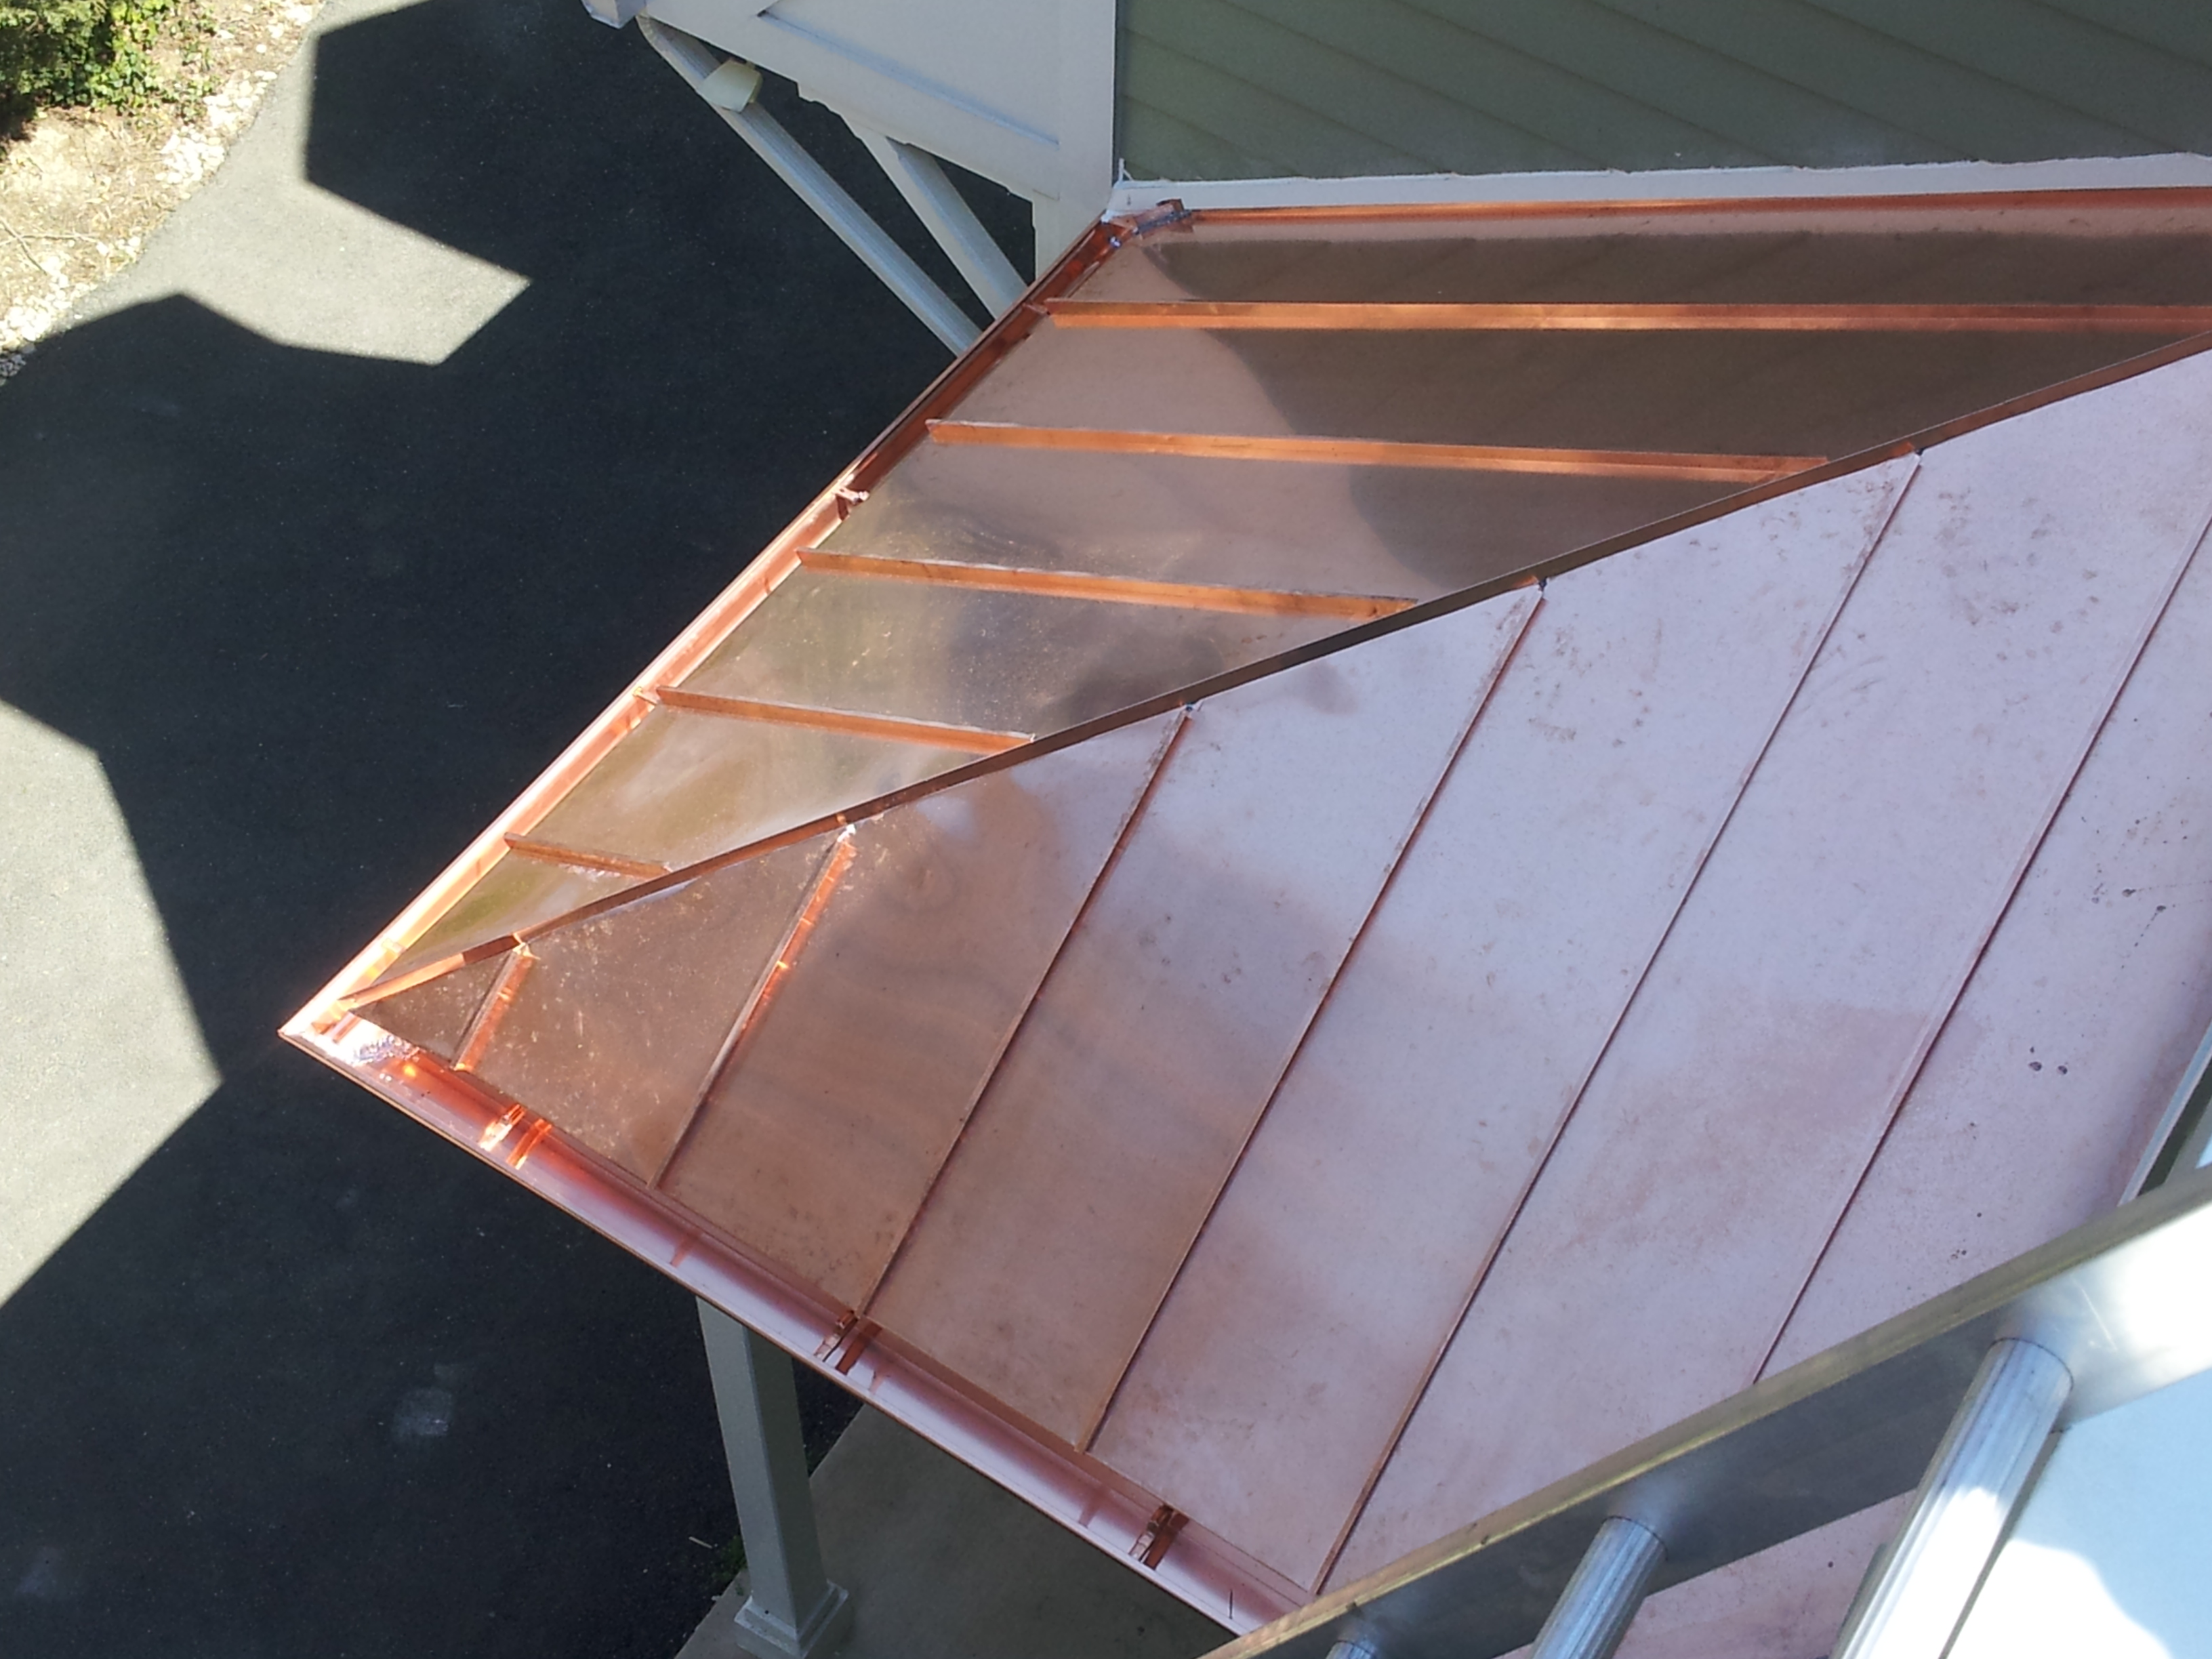 Corley roofing sheet metal co inc video image for Copper standing seam roof